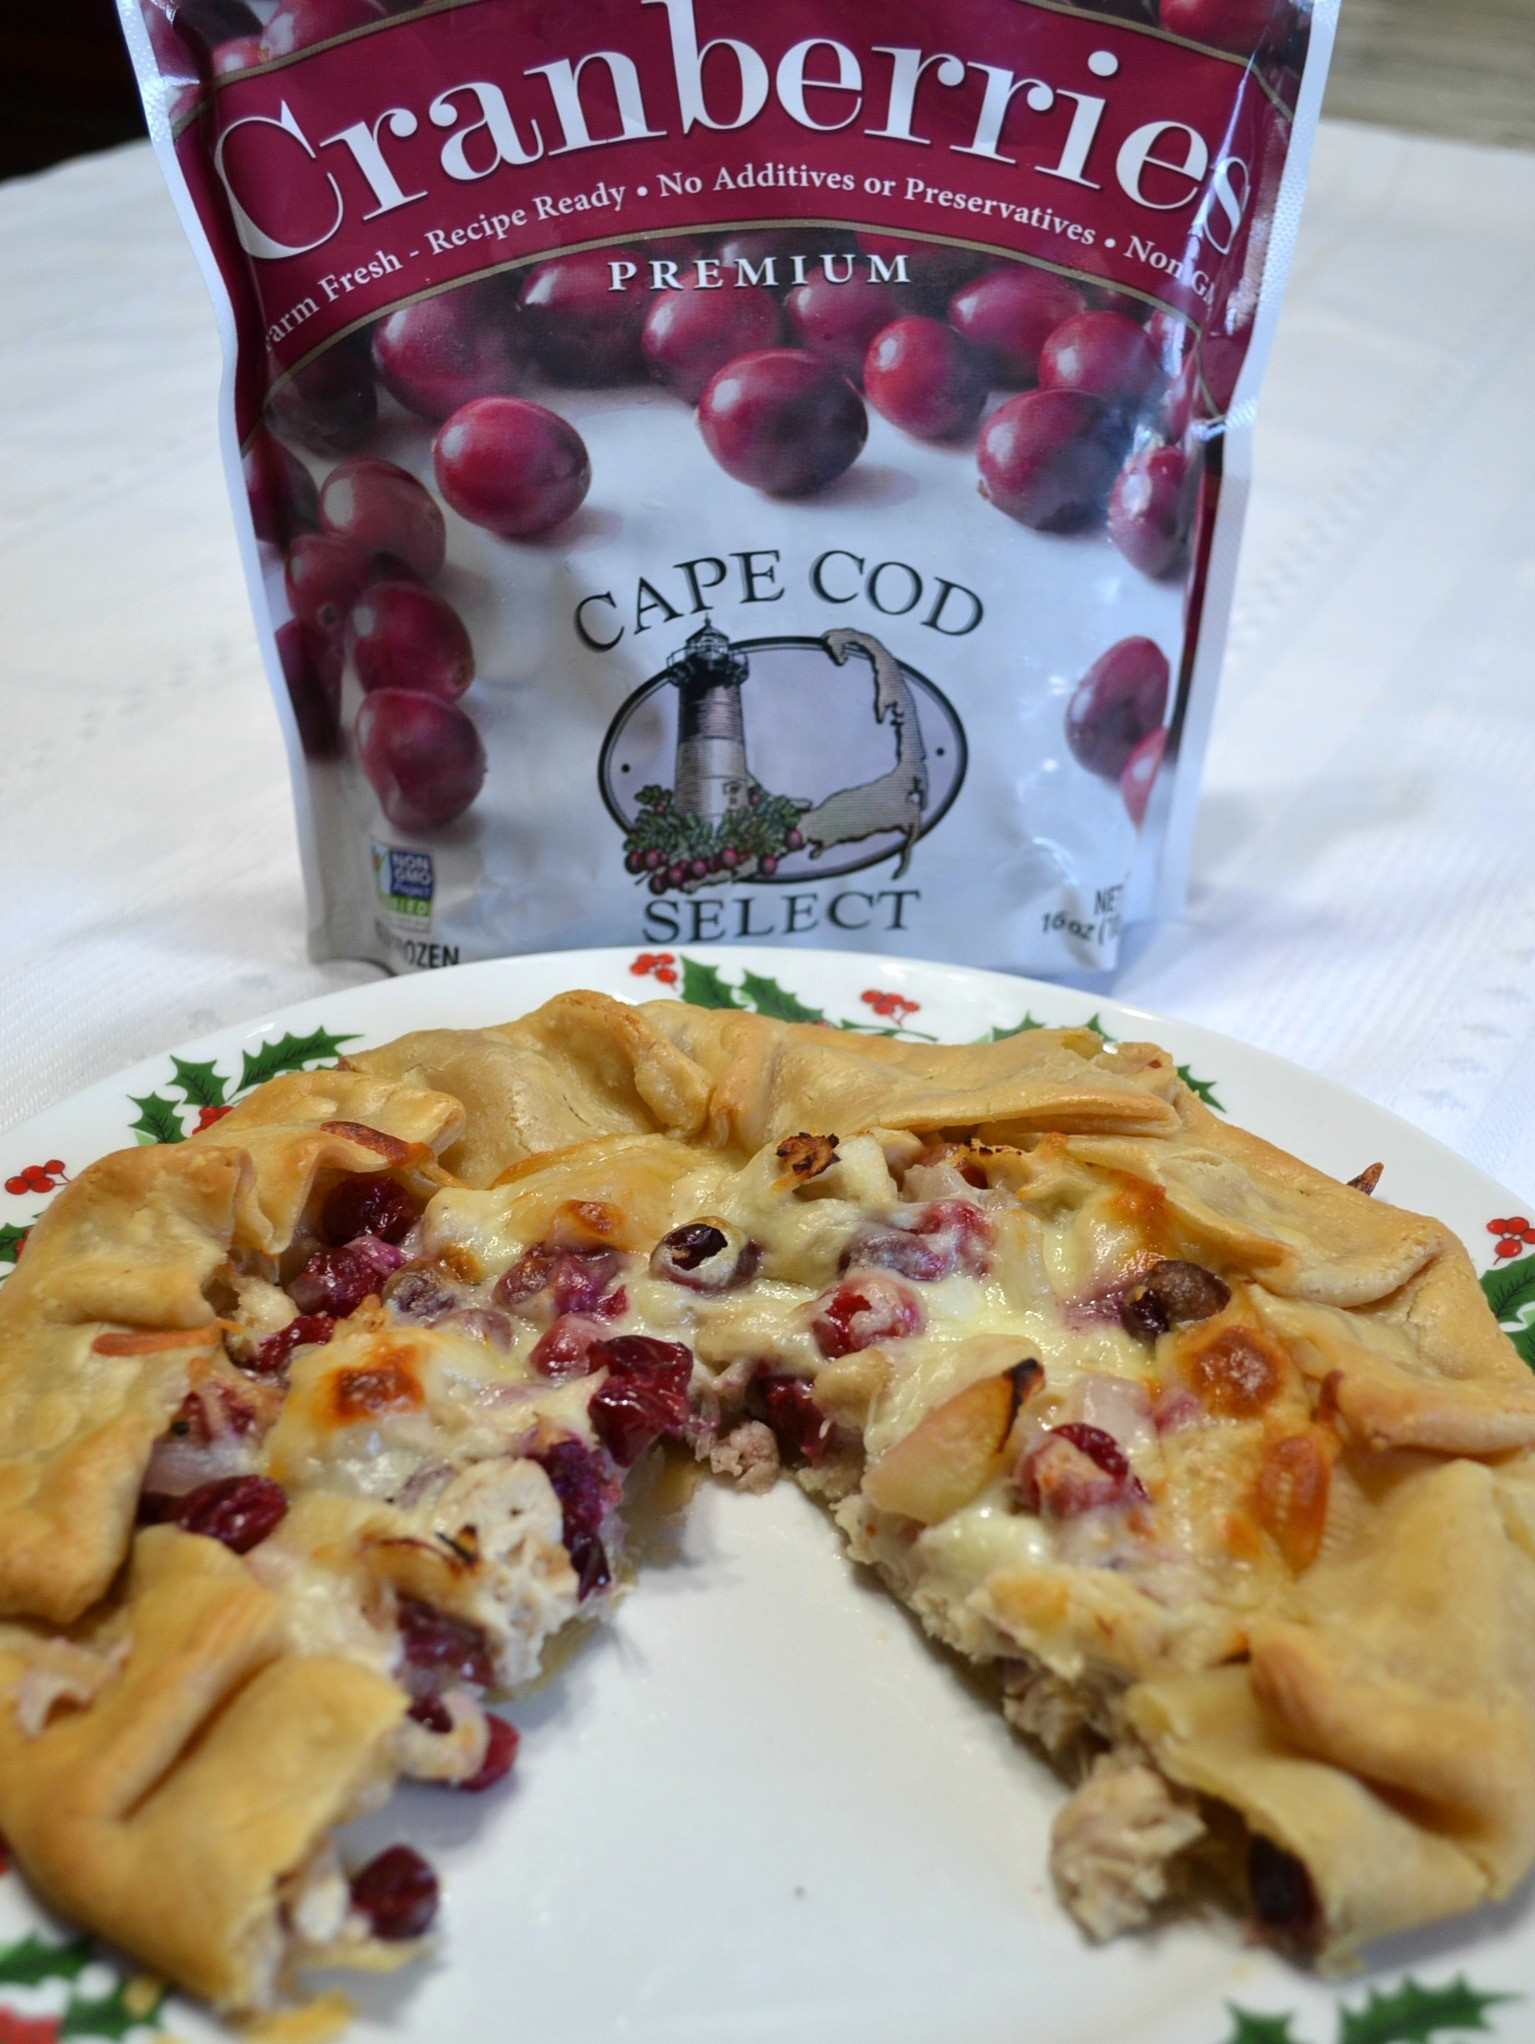 A savory recipe using Cape Cod Select Premium Frozen Cranberries for the holiday blogger challenge.